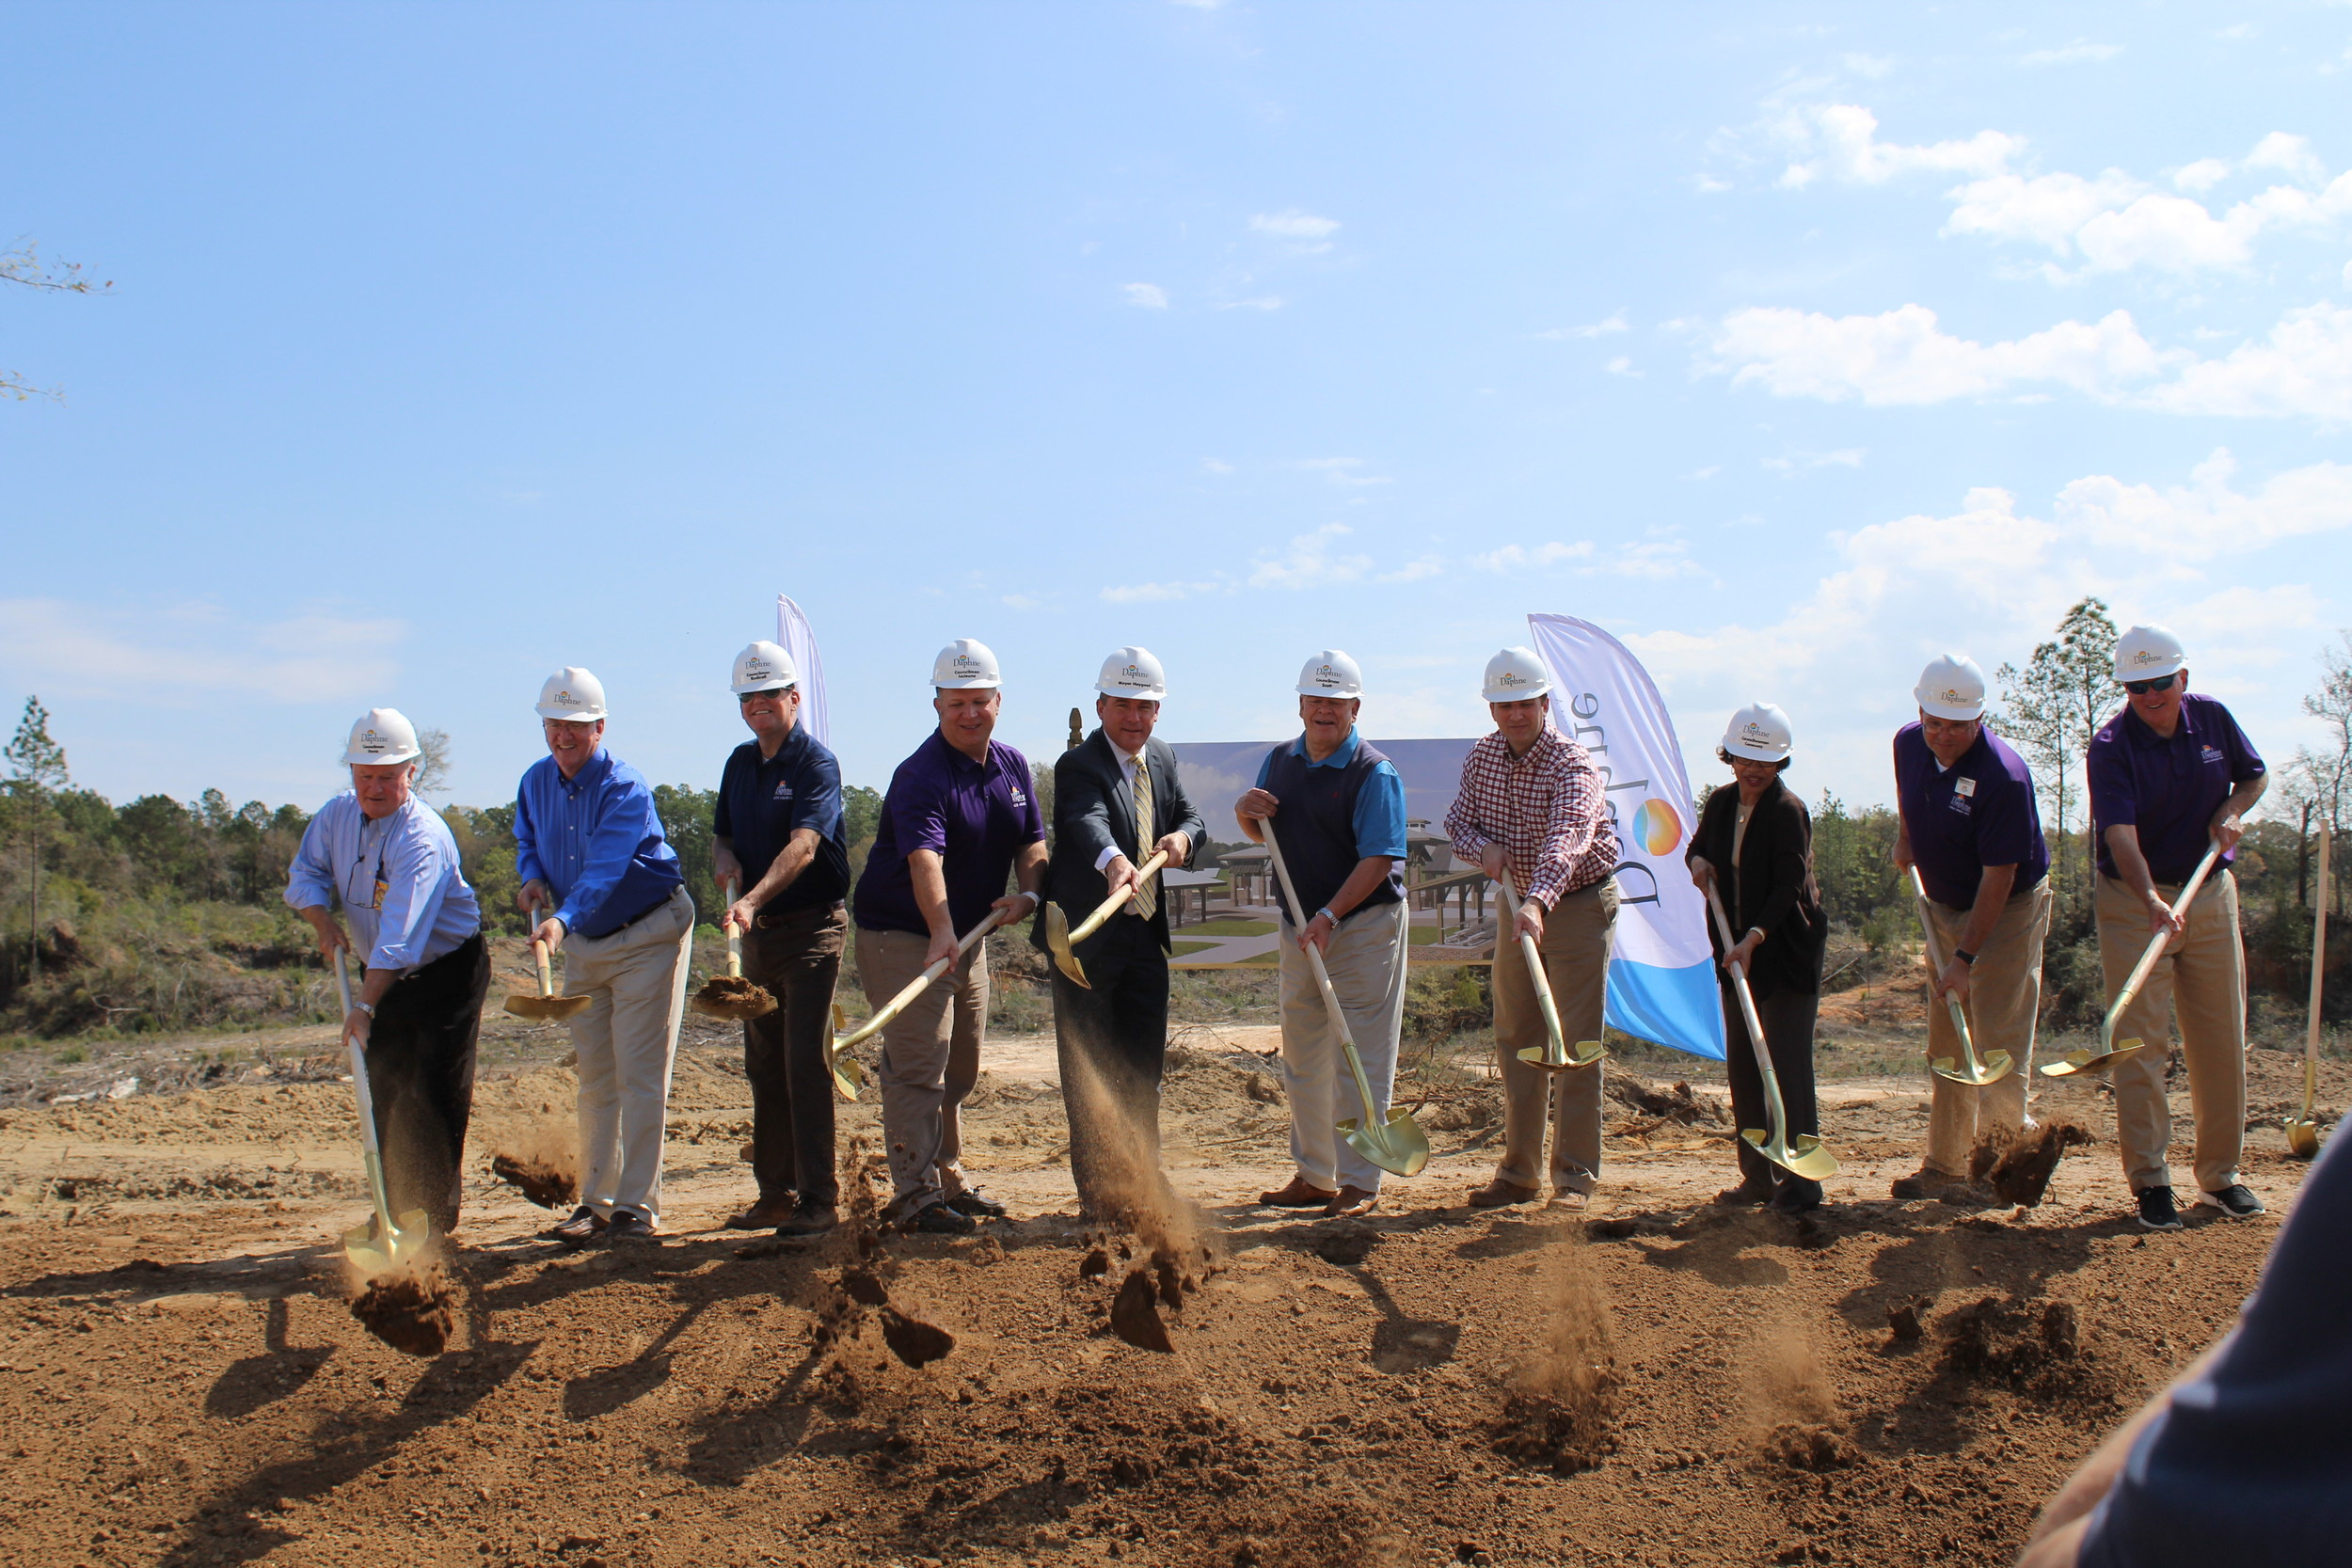 Members of the Daphne City Council, Mayor Dane Haygood and city staff throw the ceremonial first shovels of dirt at the city's new sports complex.